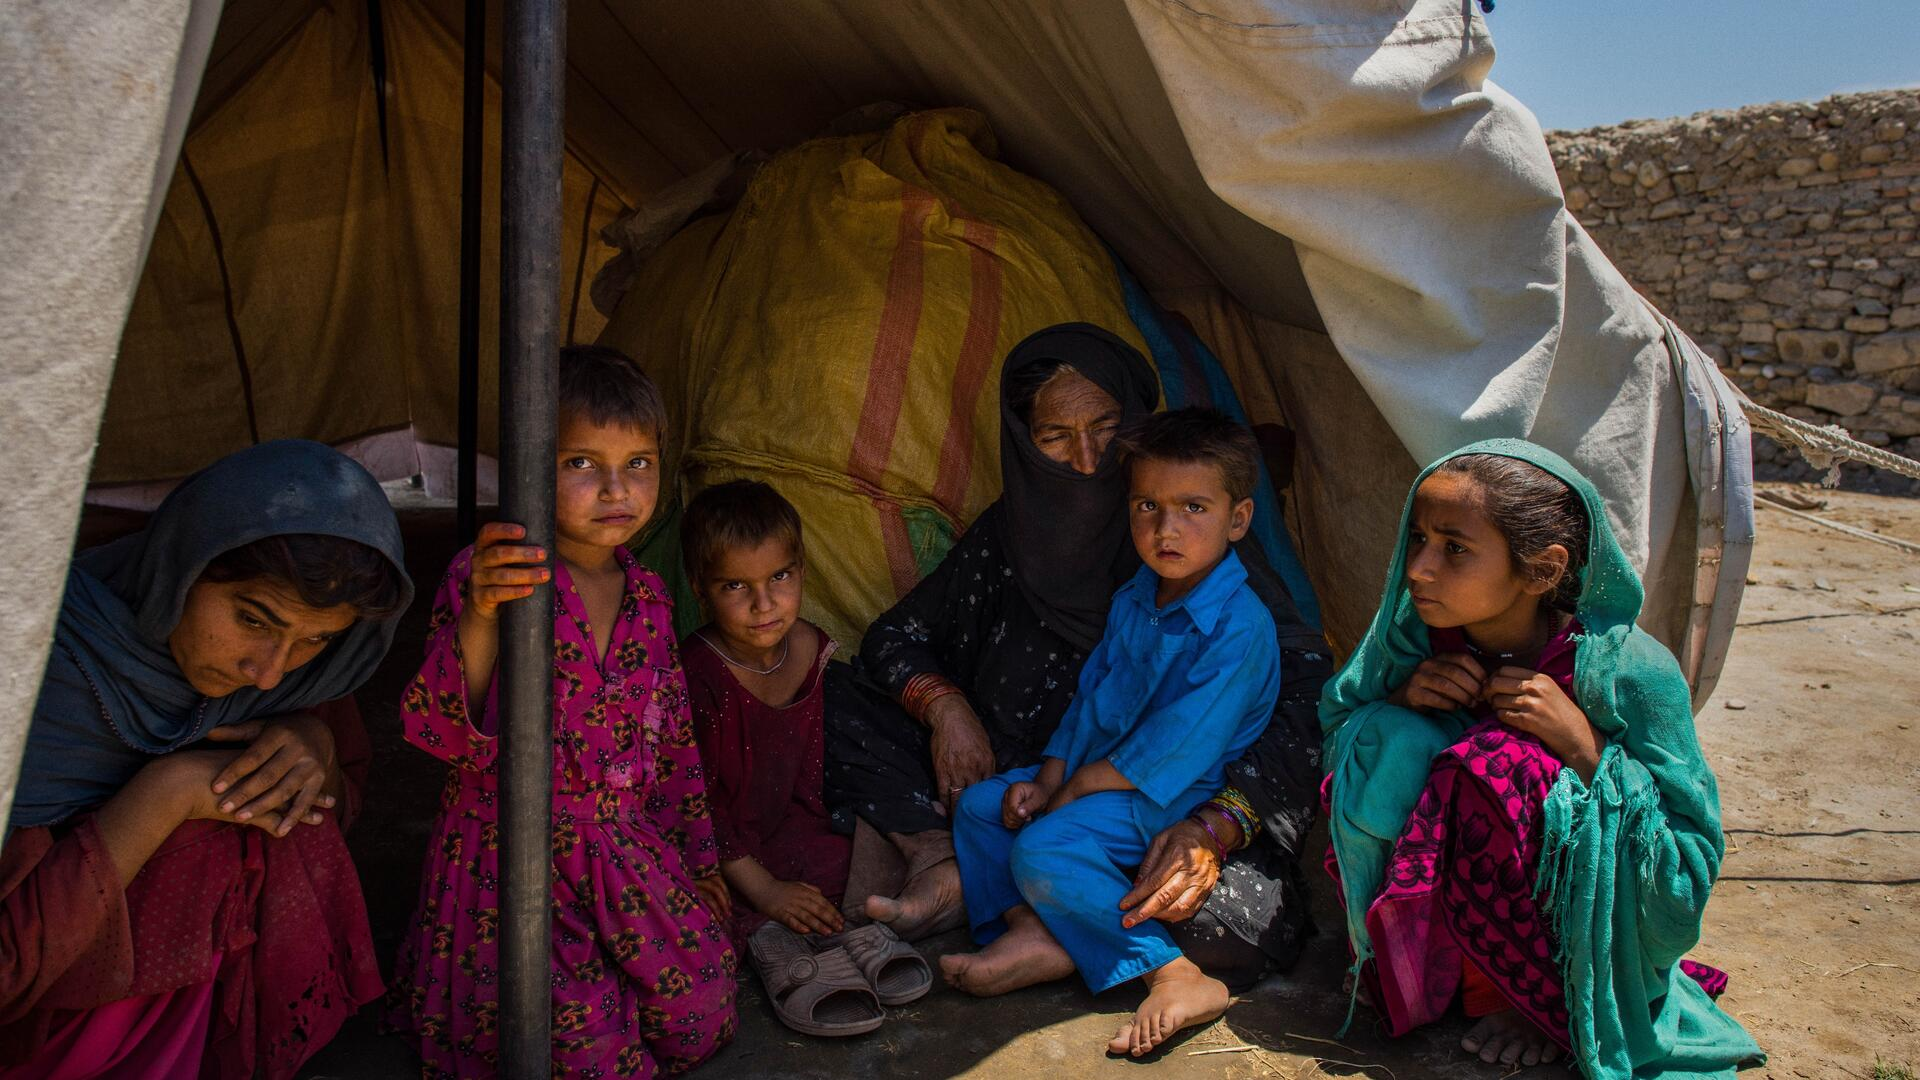 Women and children sit in the shade of one of their family's tents in a displacement camp in a desert landscape in Afghanistan..